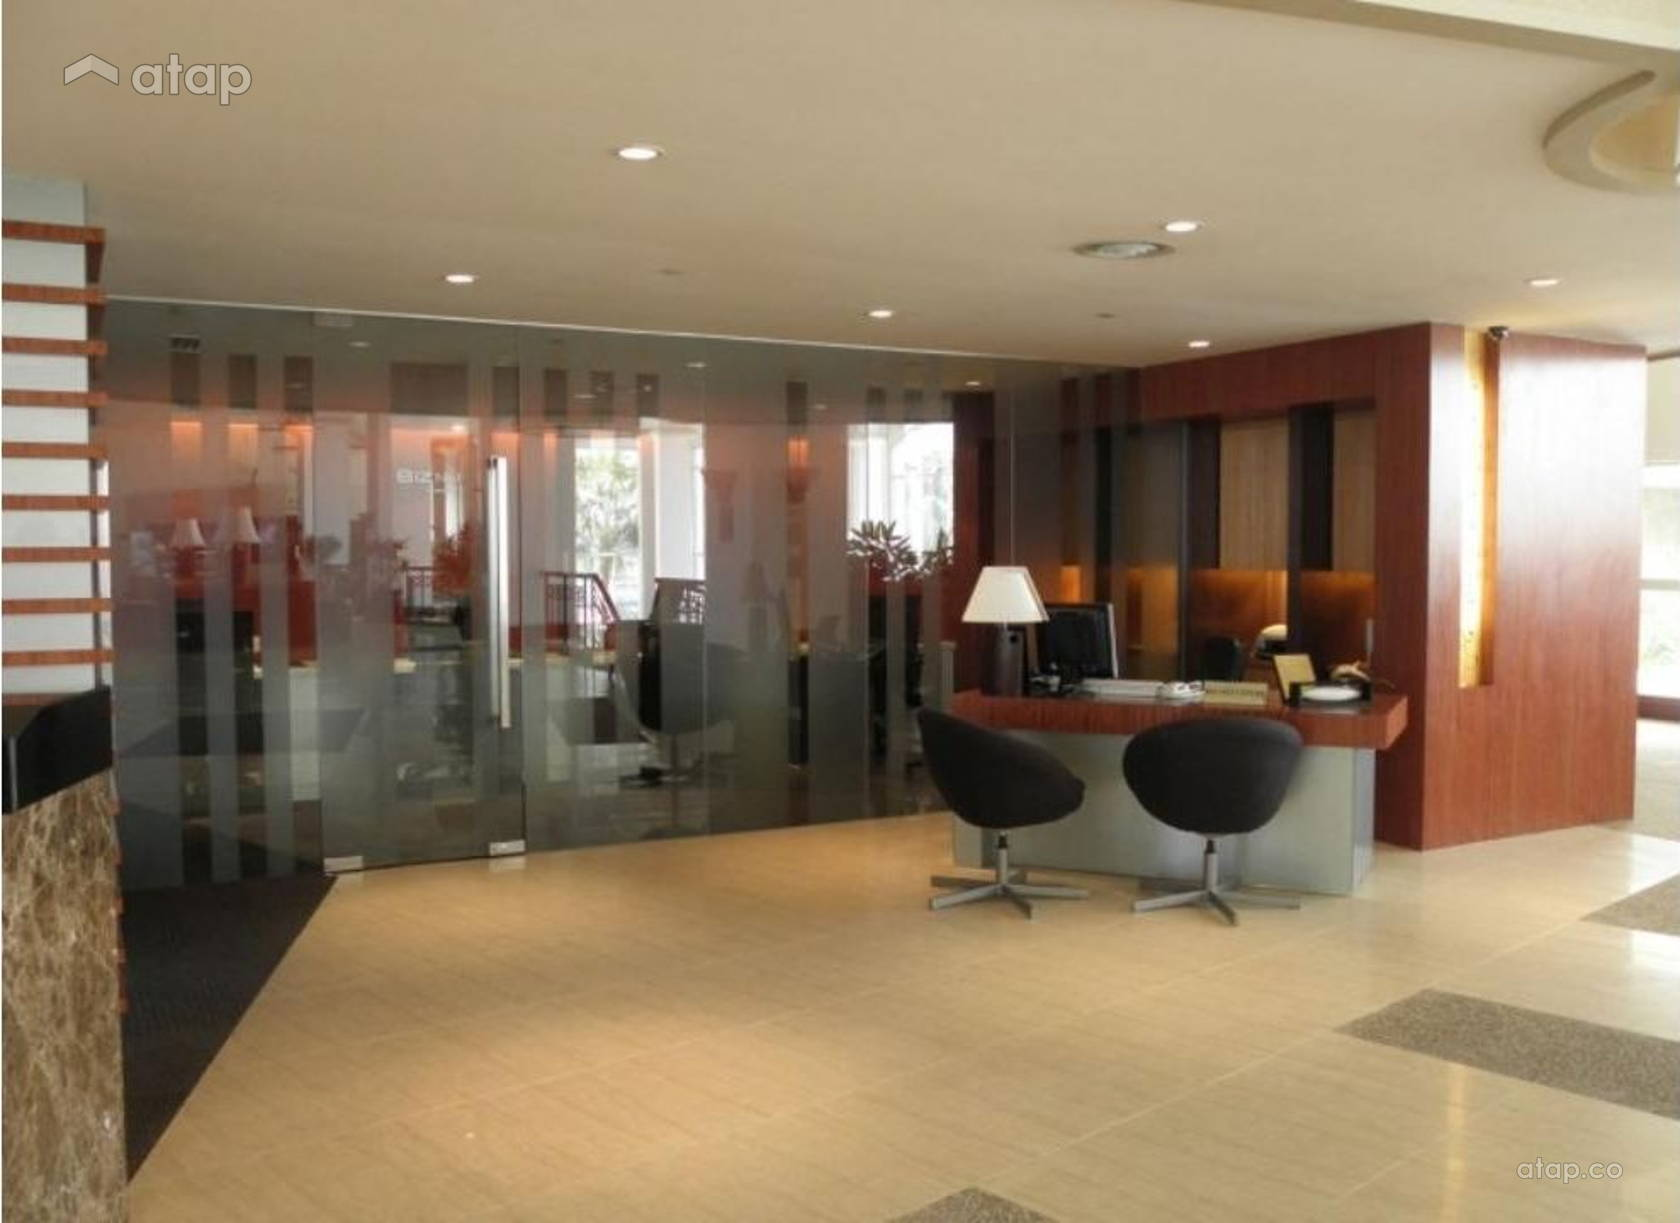 The Ars Design Interior Services